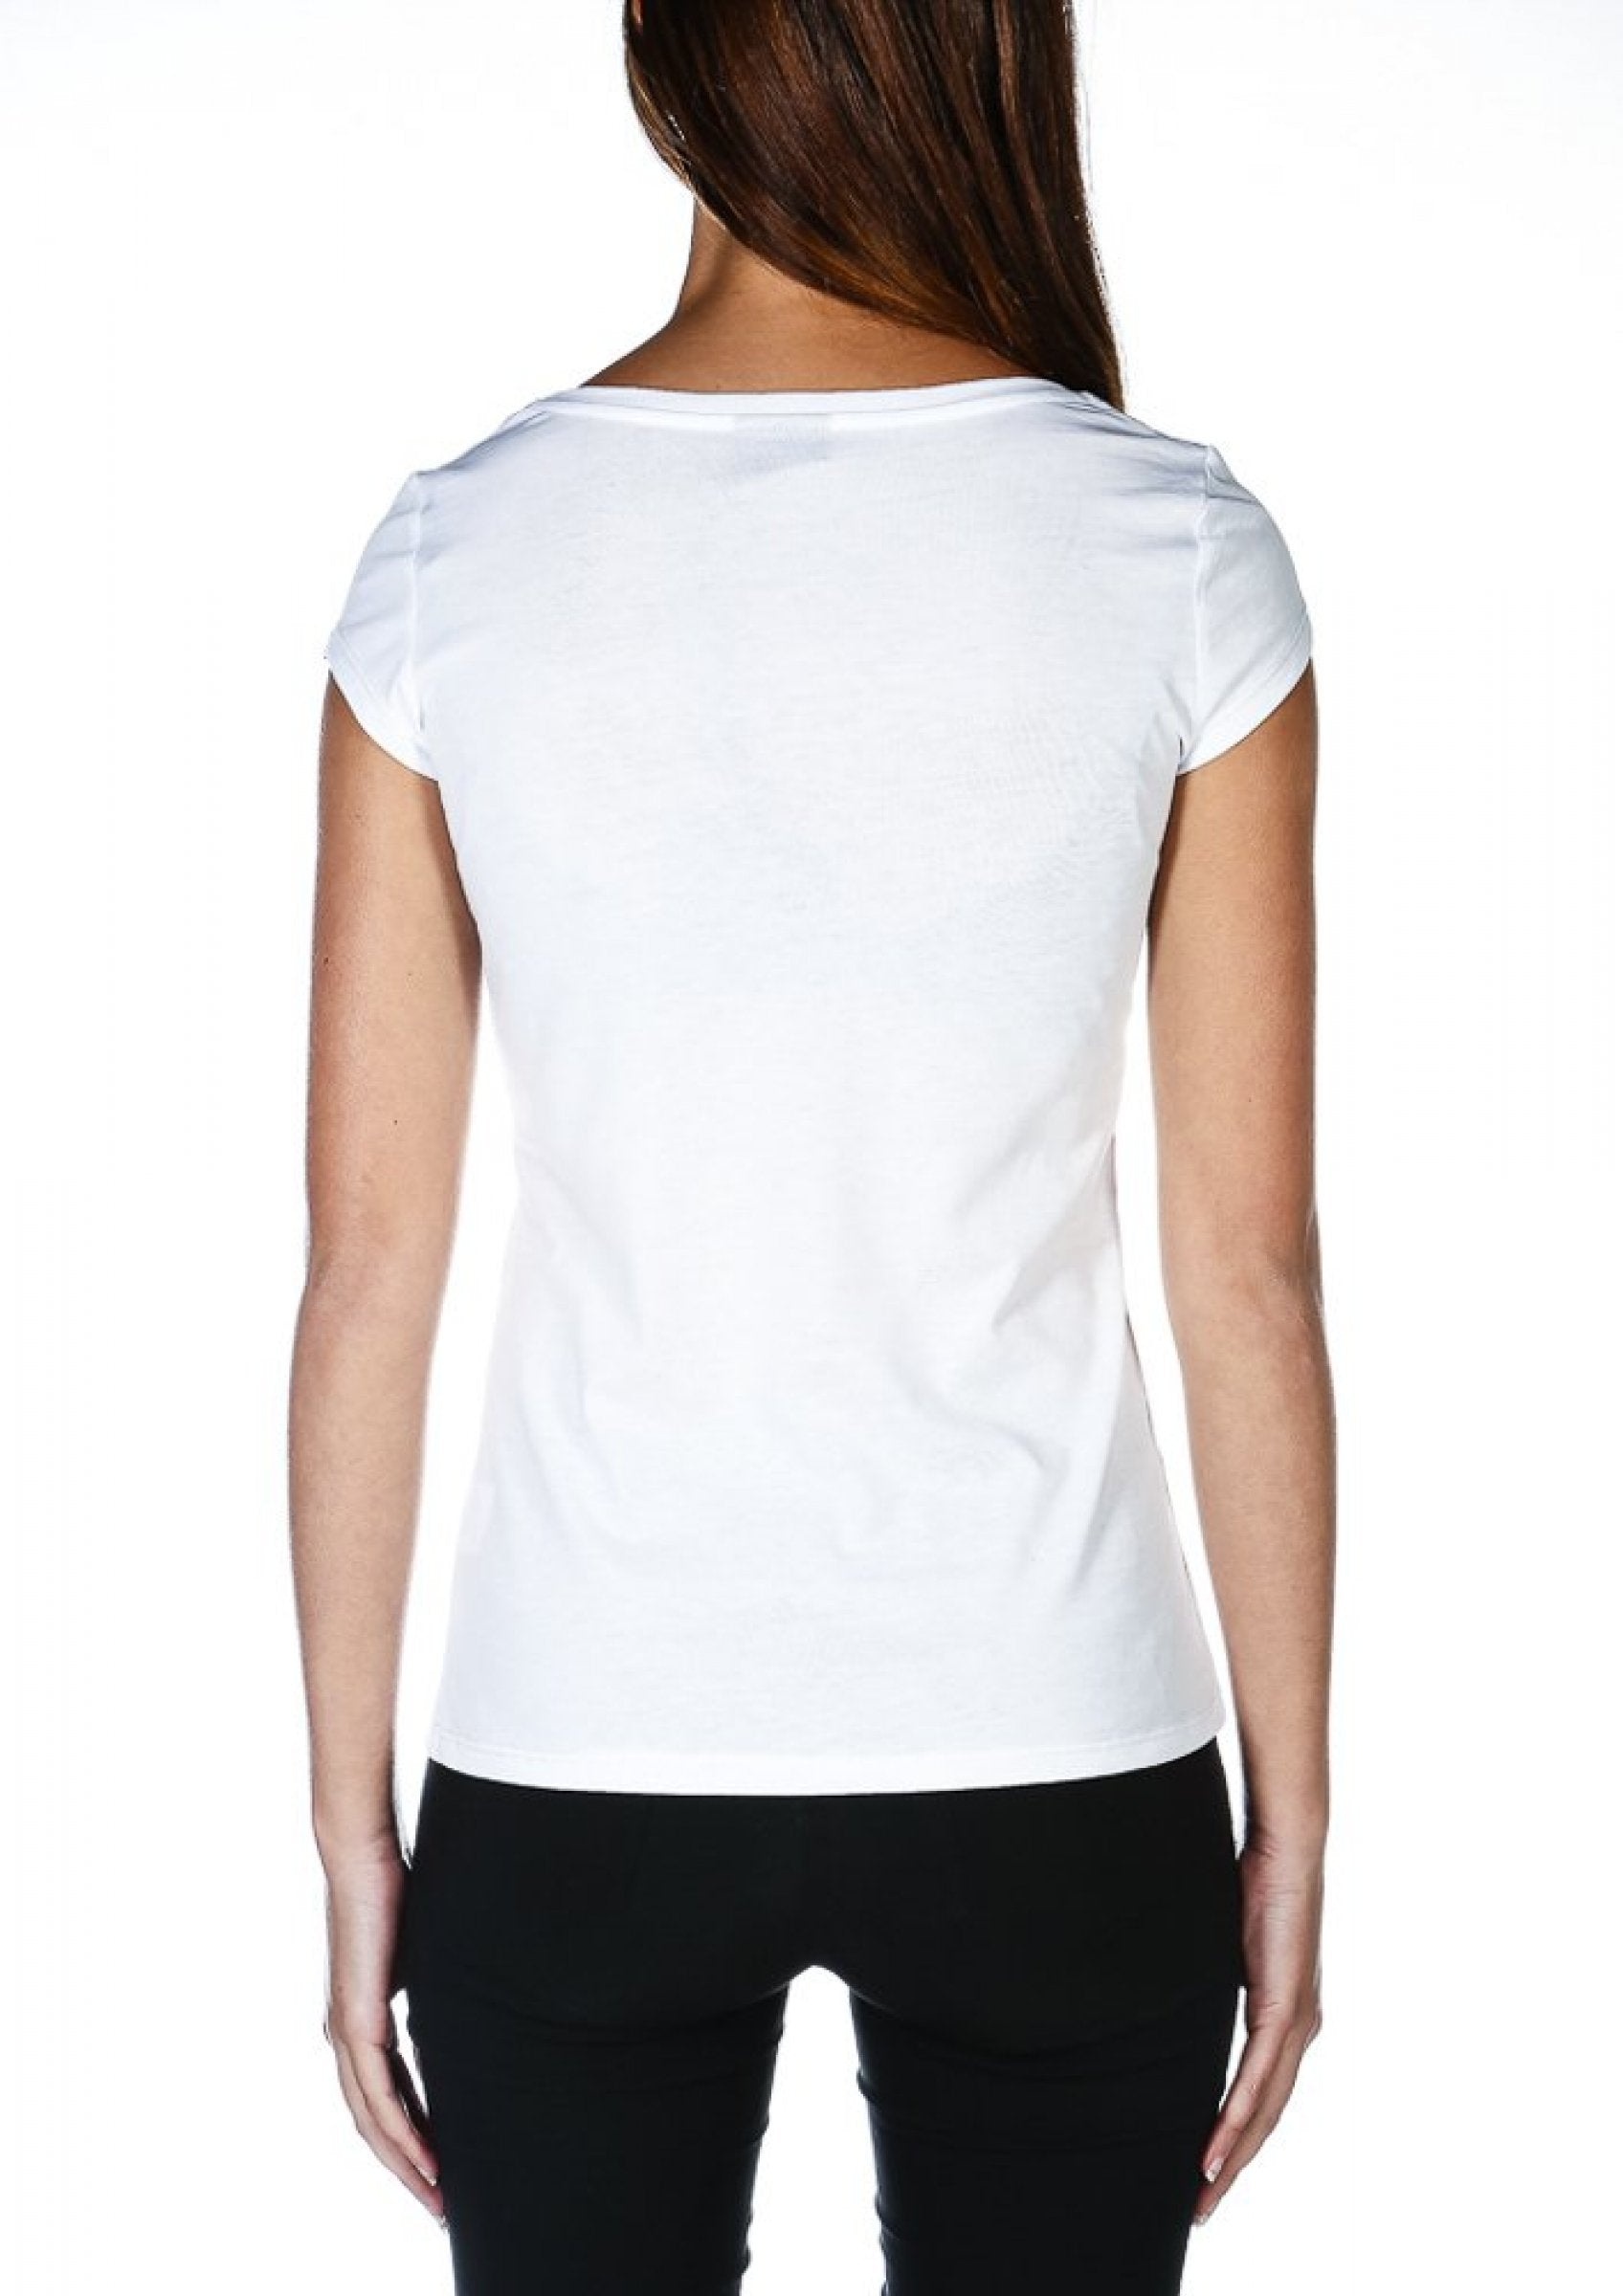 CO Basic Cotton Tee - The Bobby Boga